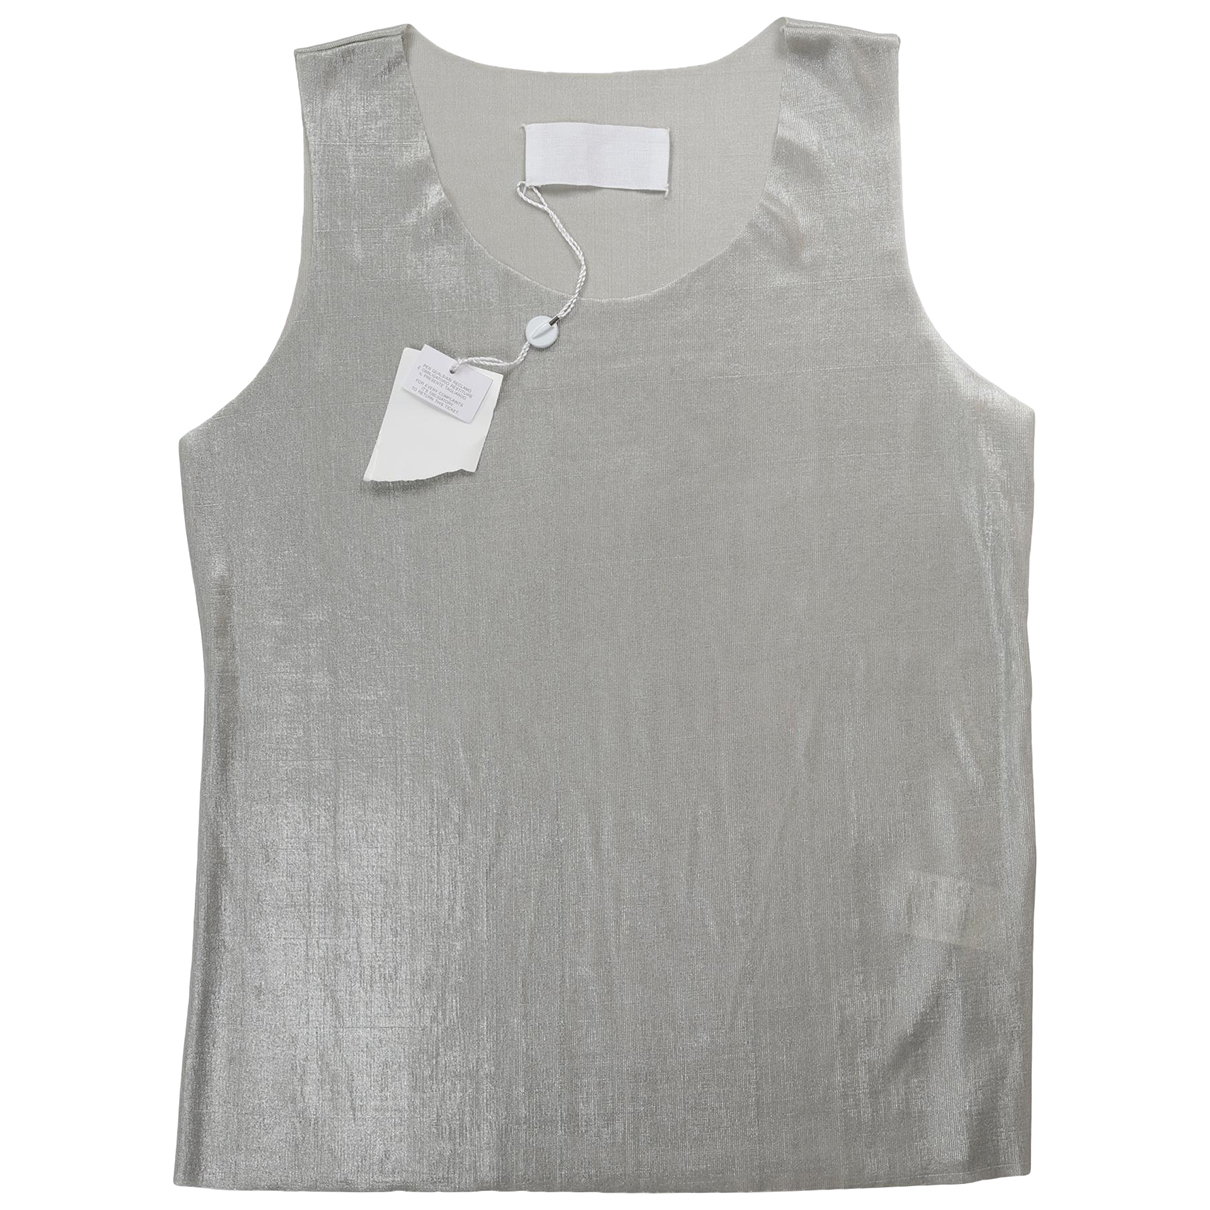 Maison Martin Margiela \N Silver  top for Women M International